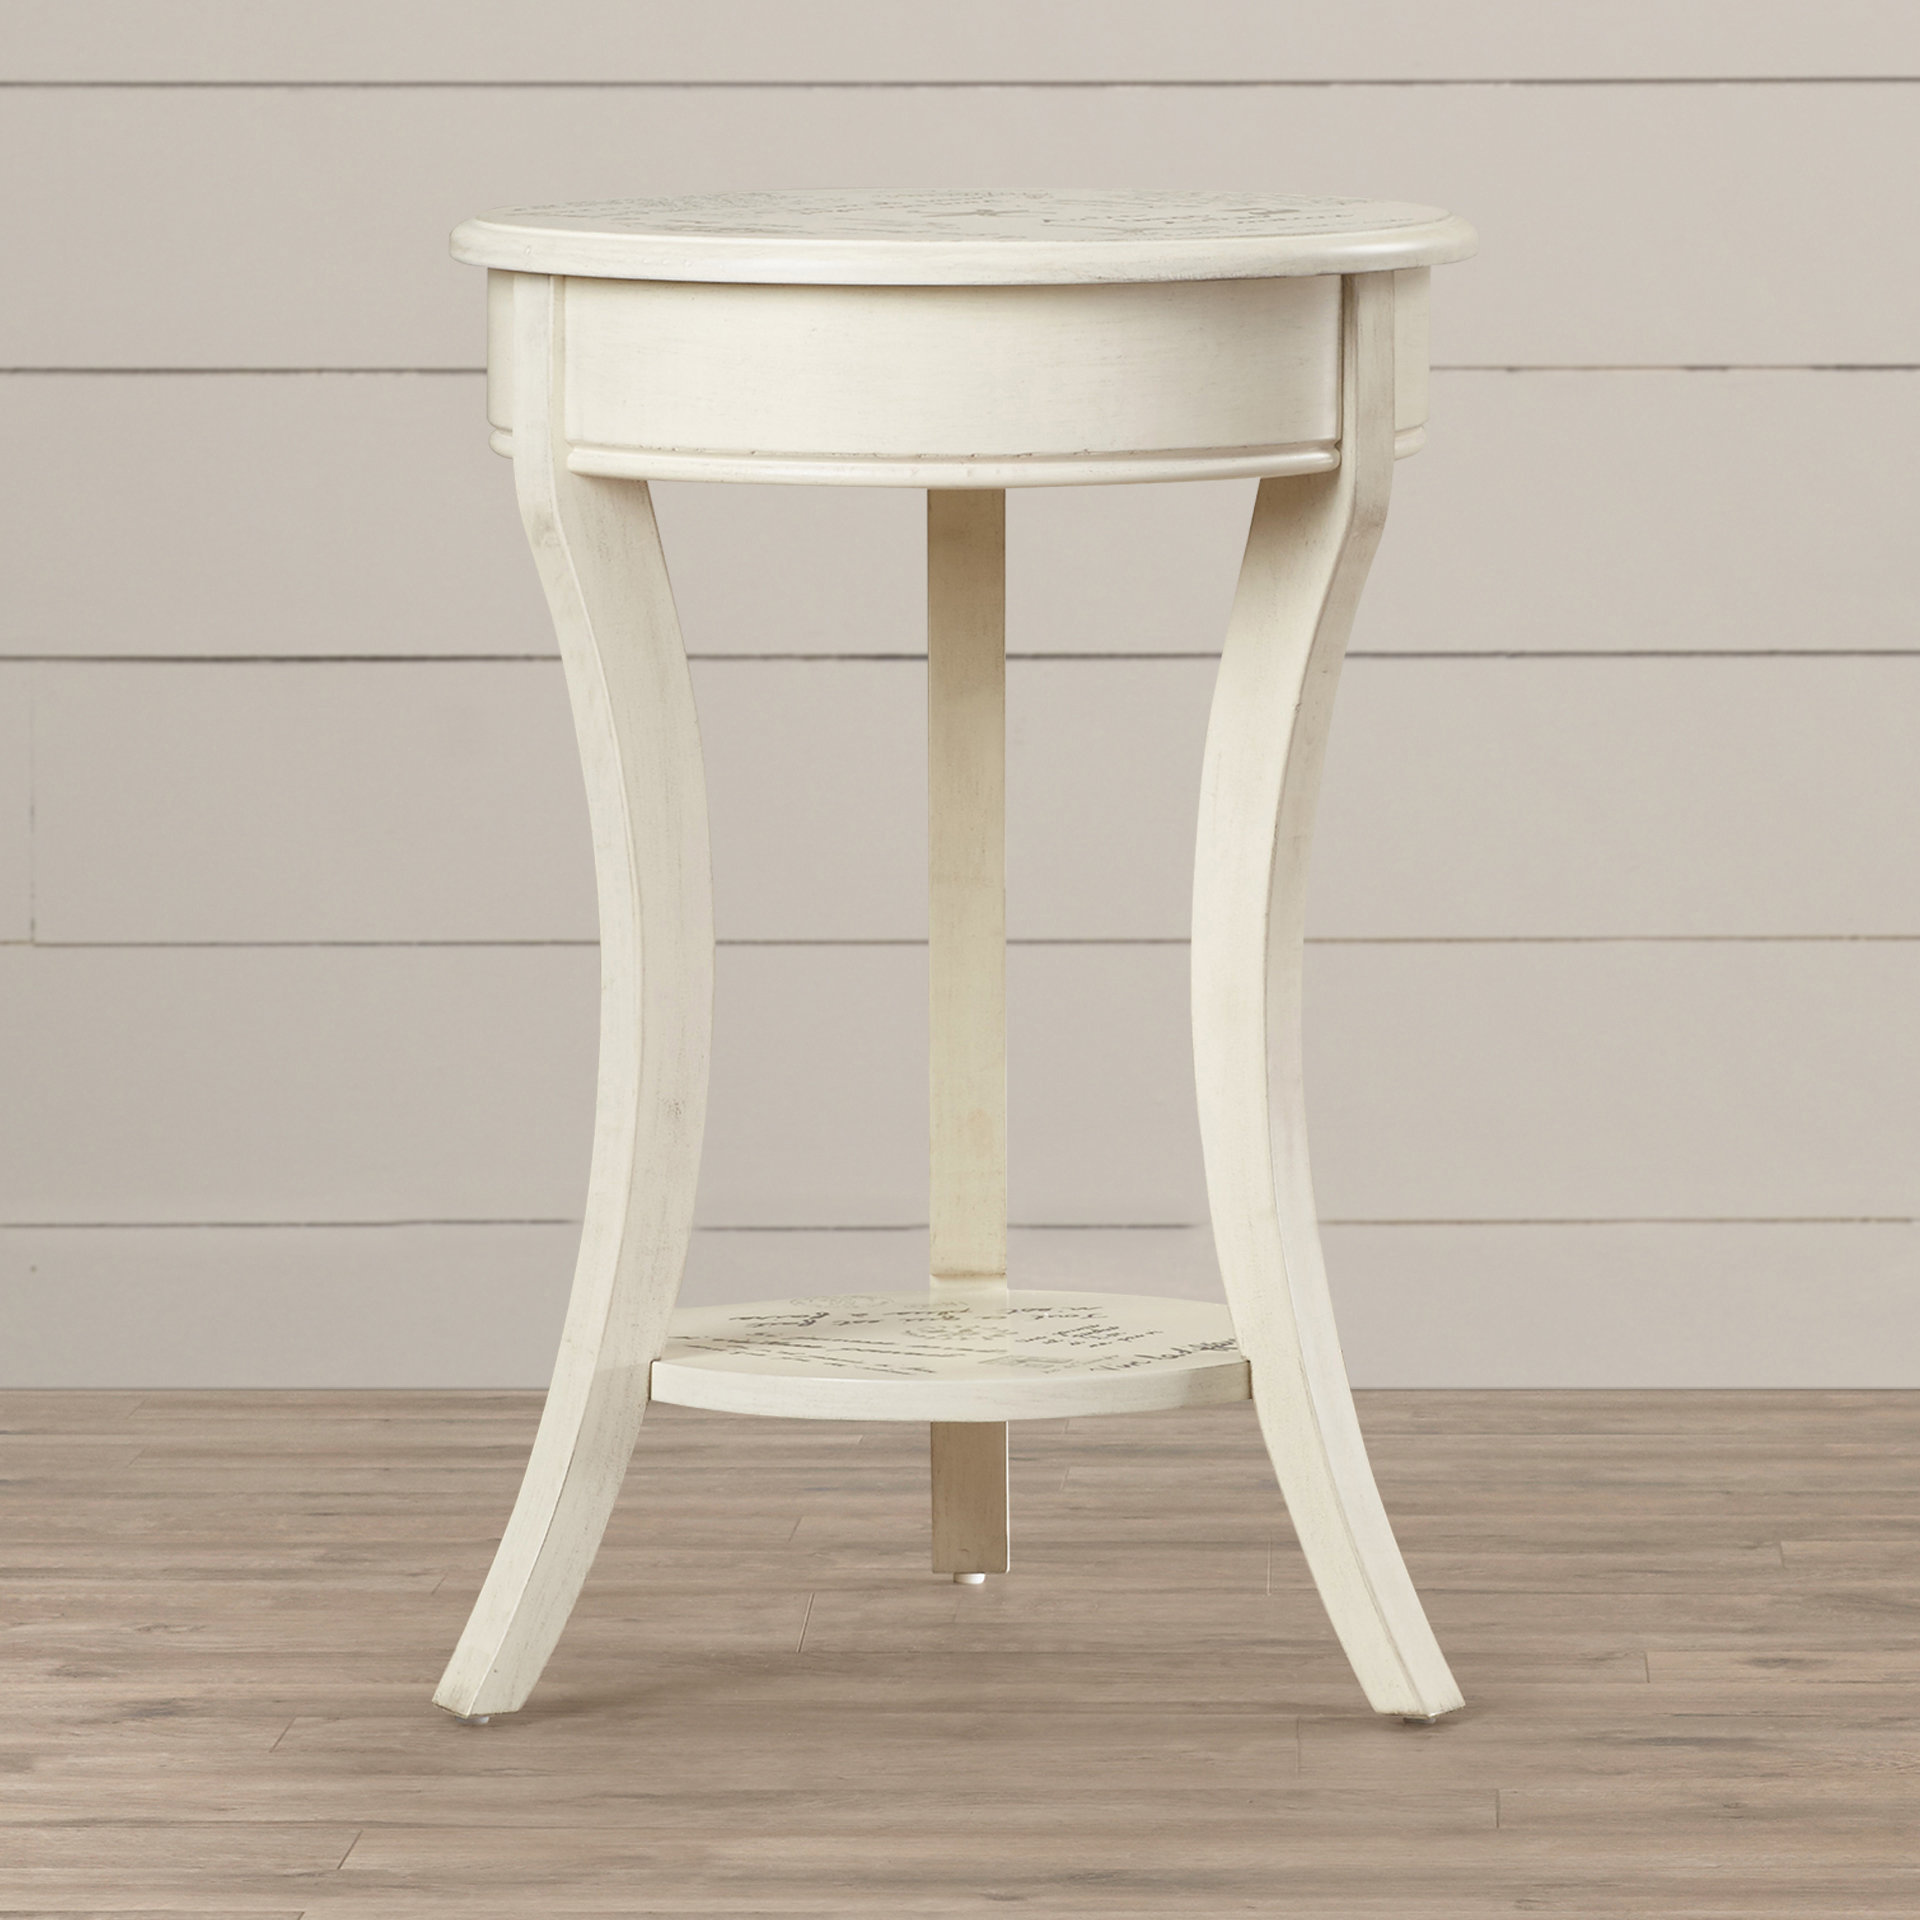 curved accent table nevaeh parisian script ifrane end glass top corner safavieh coffee mirrored clearance bedding marble style tennis lamp shades hampton bay outdoor furniture